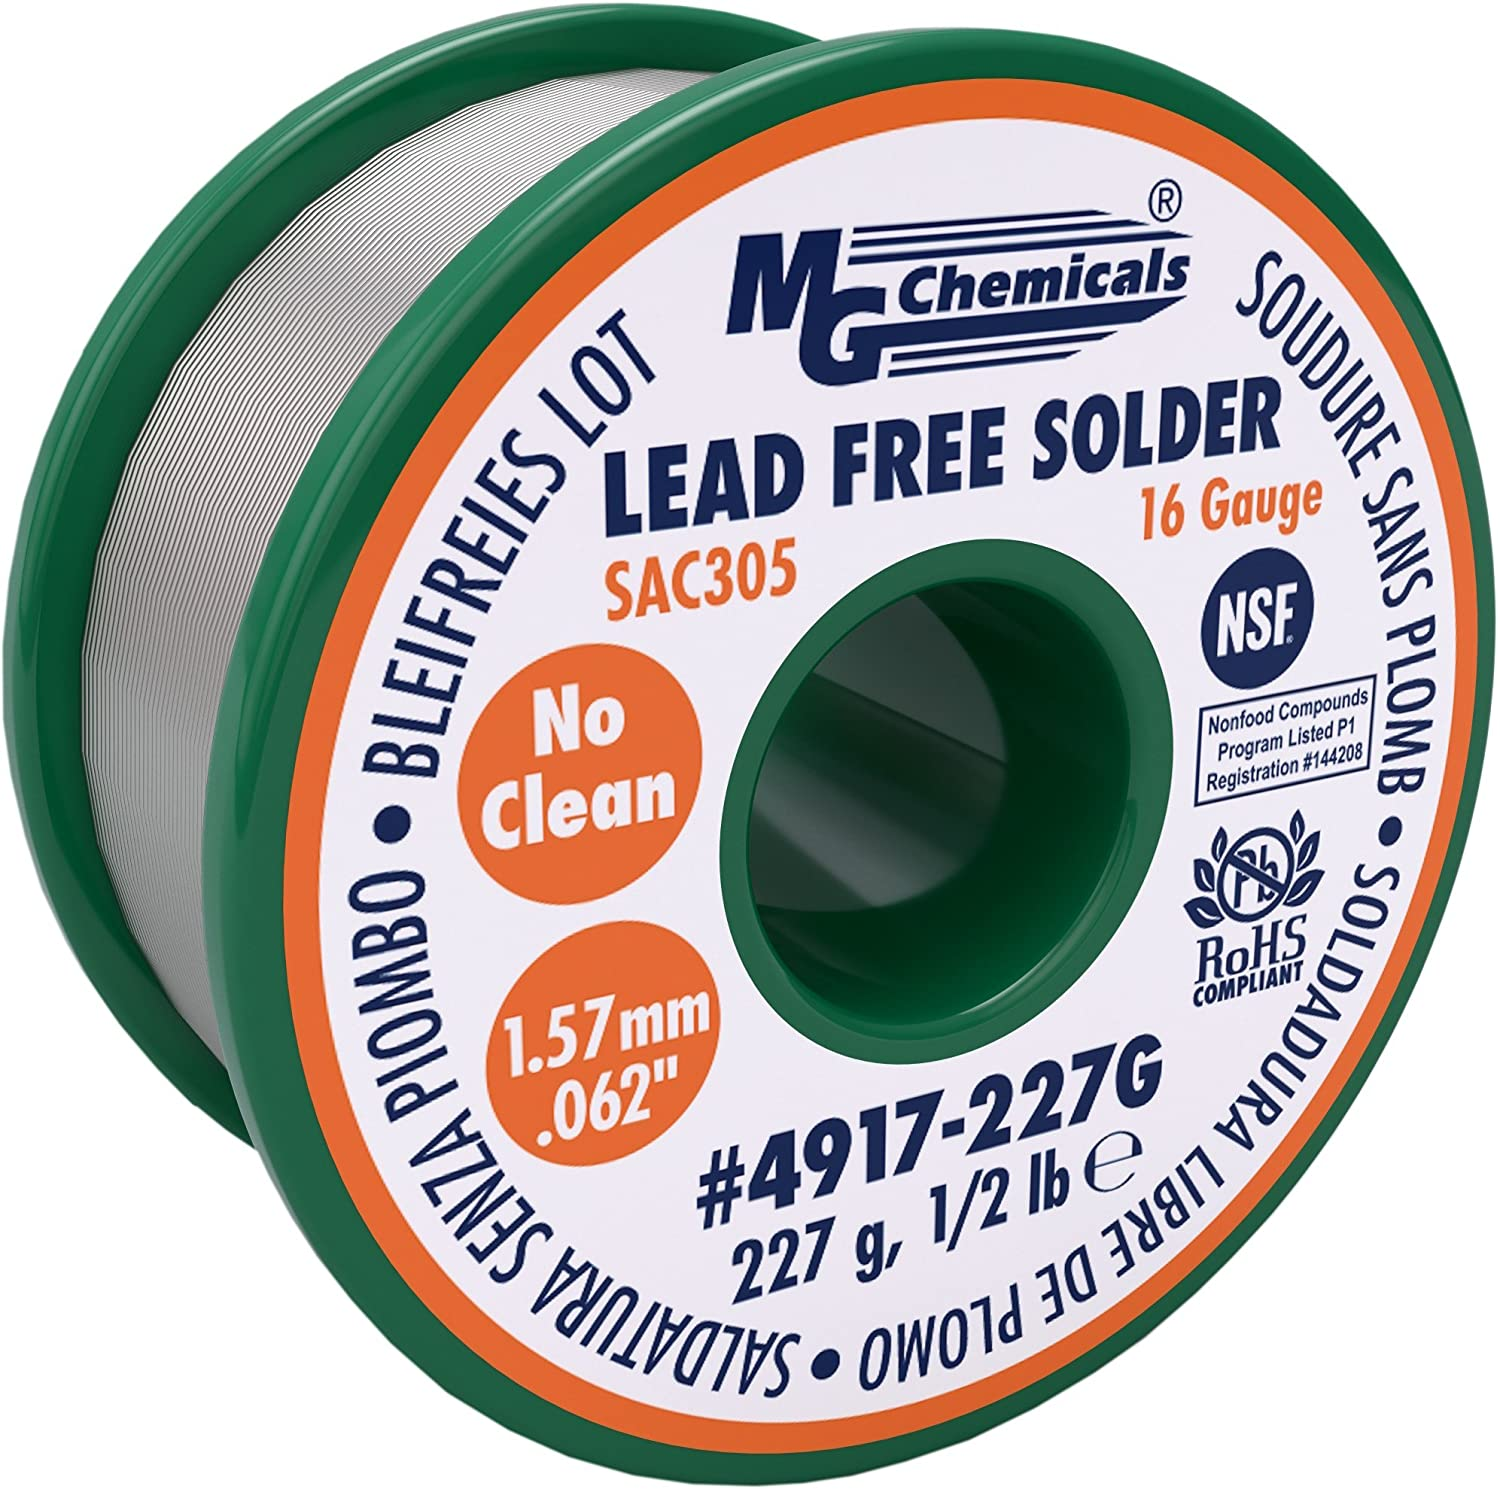 MG Chemicals SAC305, 96.3% Tin, 0.7% Copper, 3% Silver, Unleaded Solder, No Clean, 1.57mm, 0.06